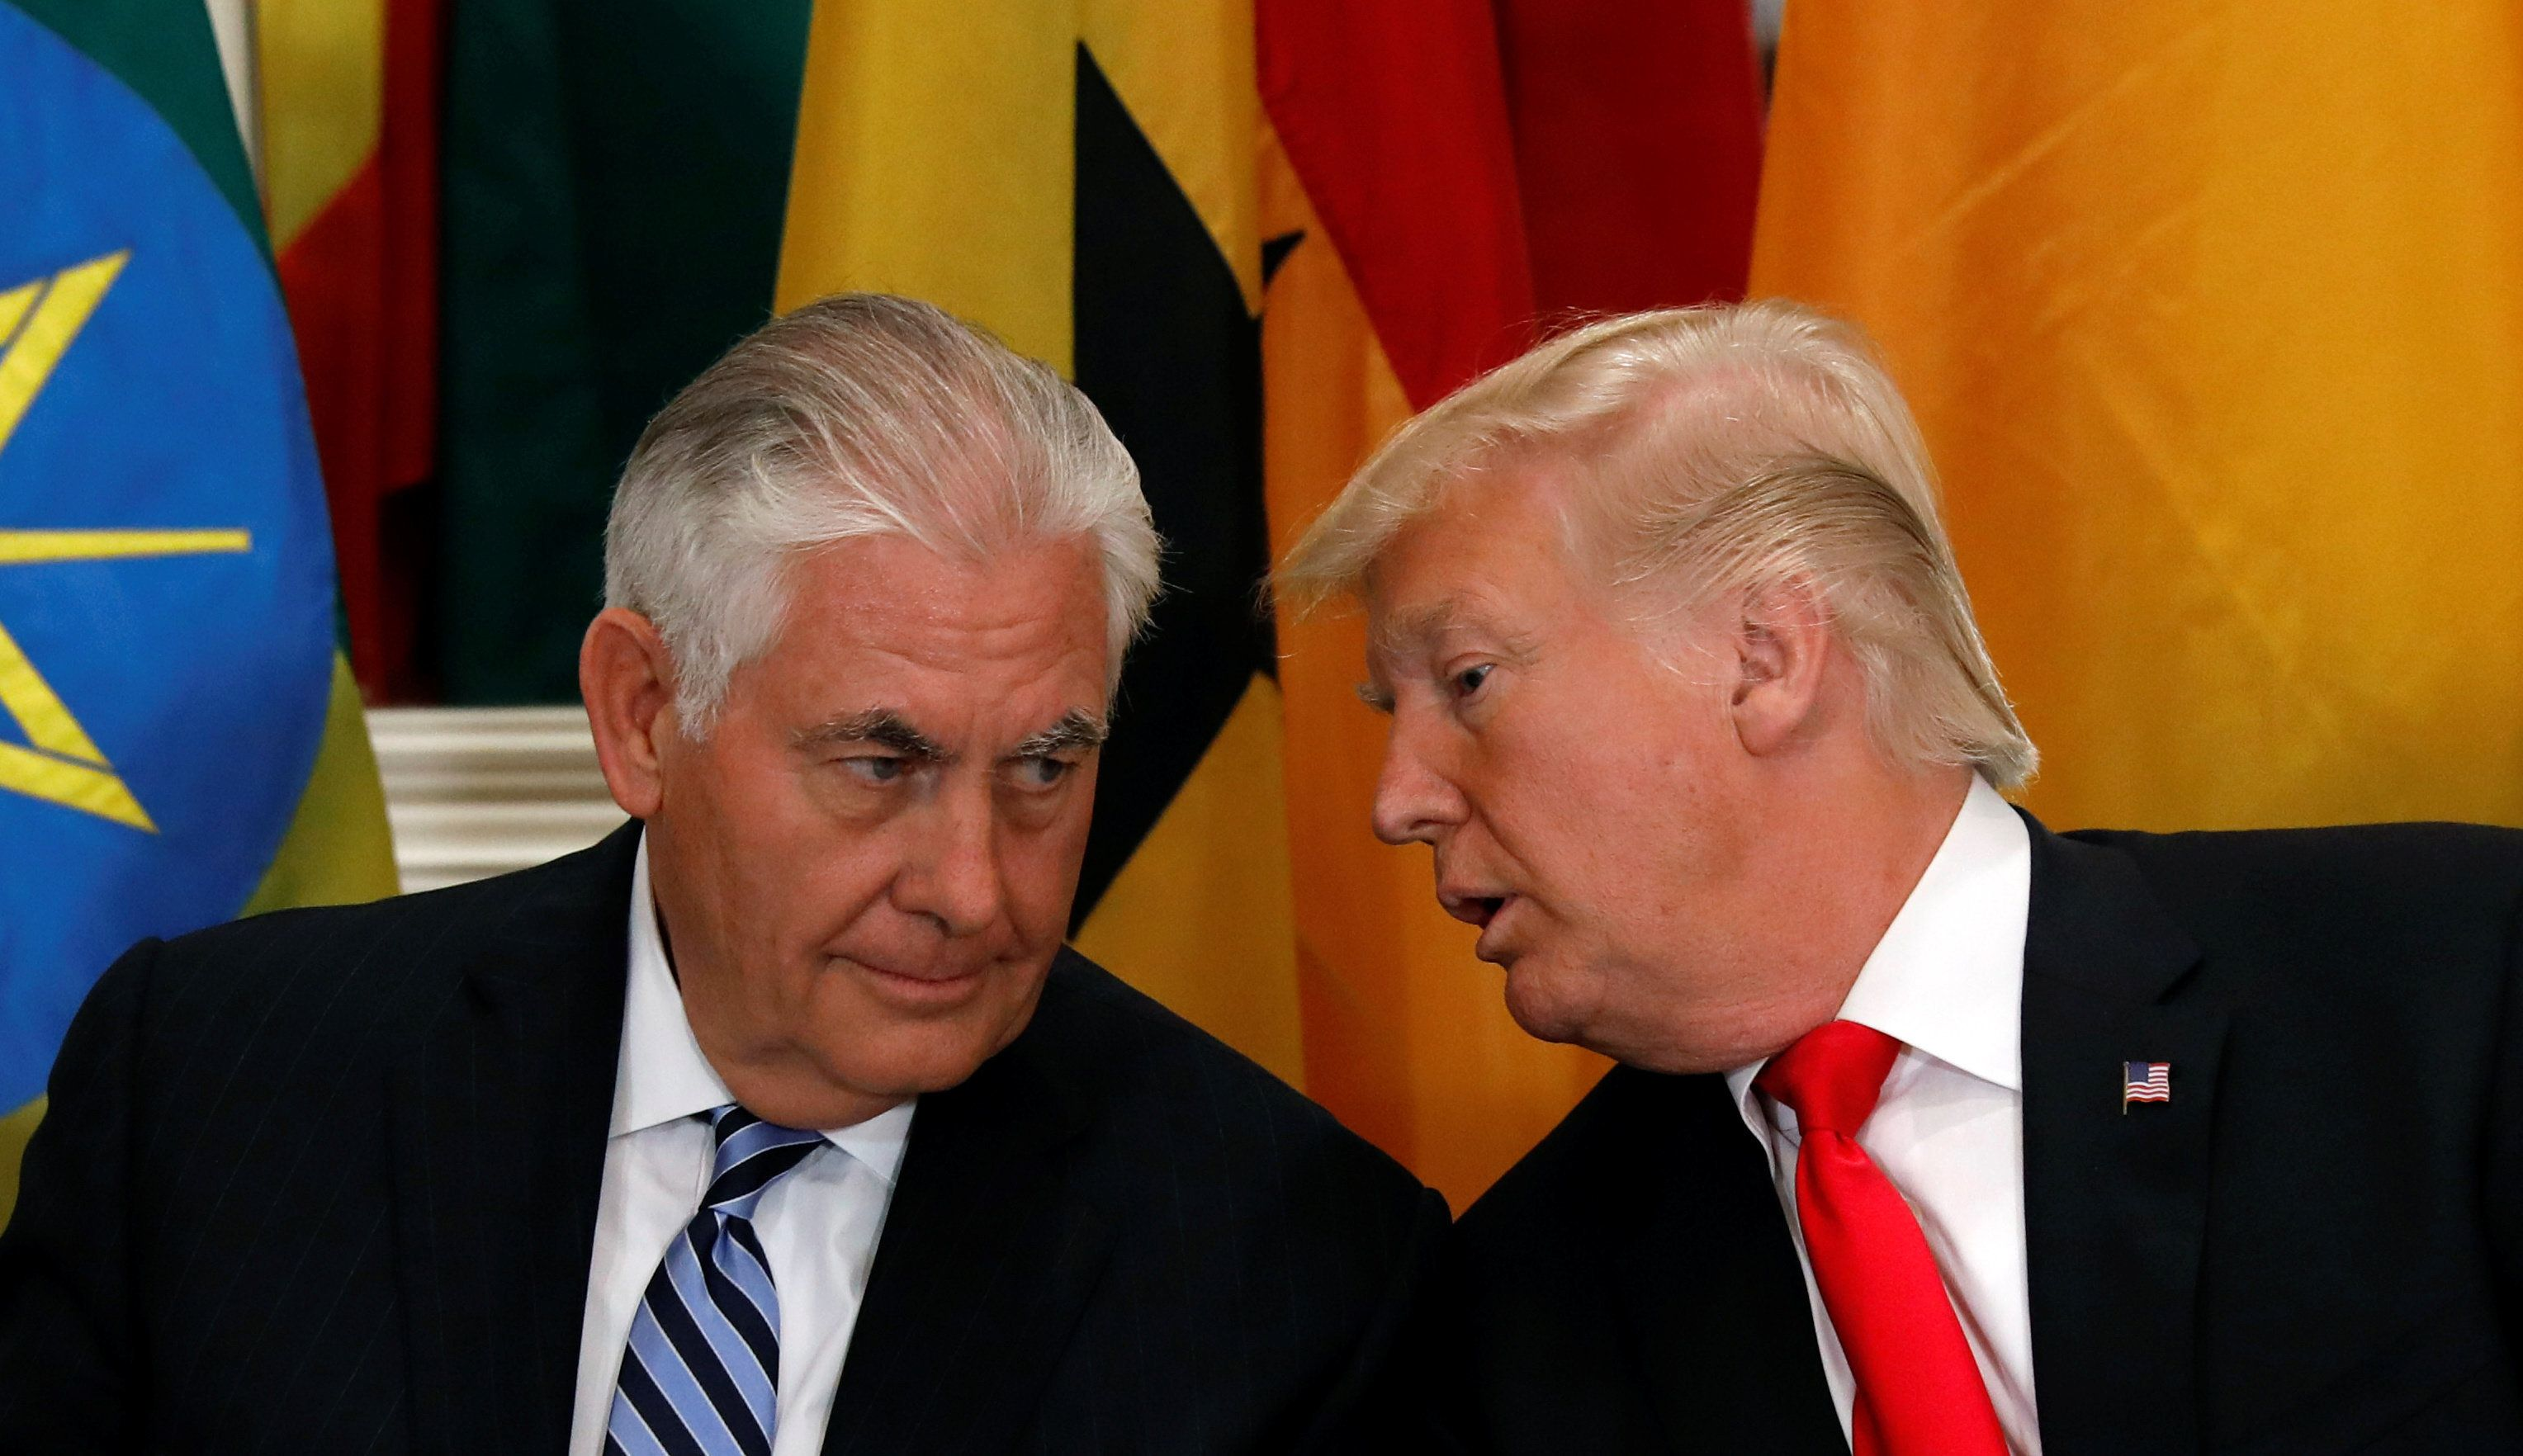 HPRgument: Trump Clashes With Tillerson